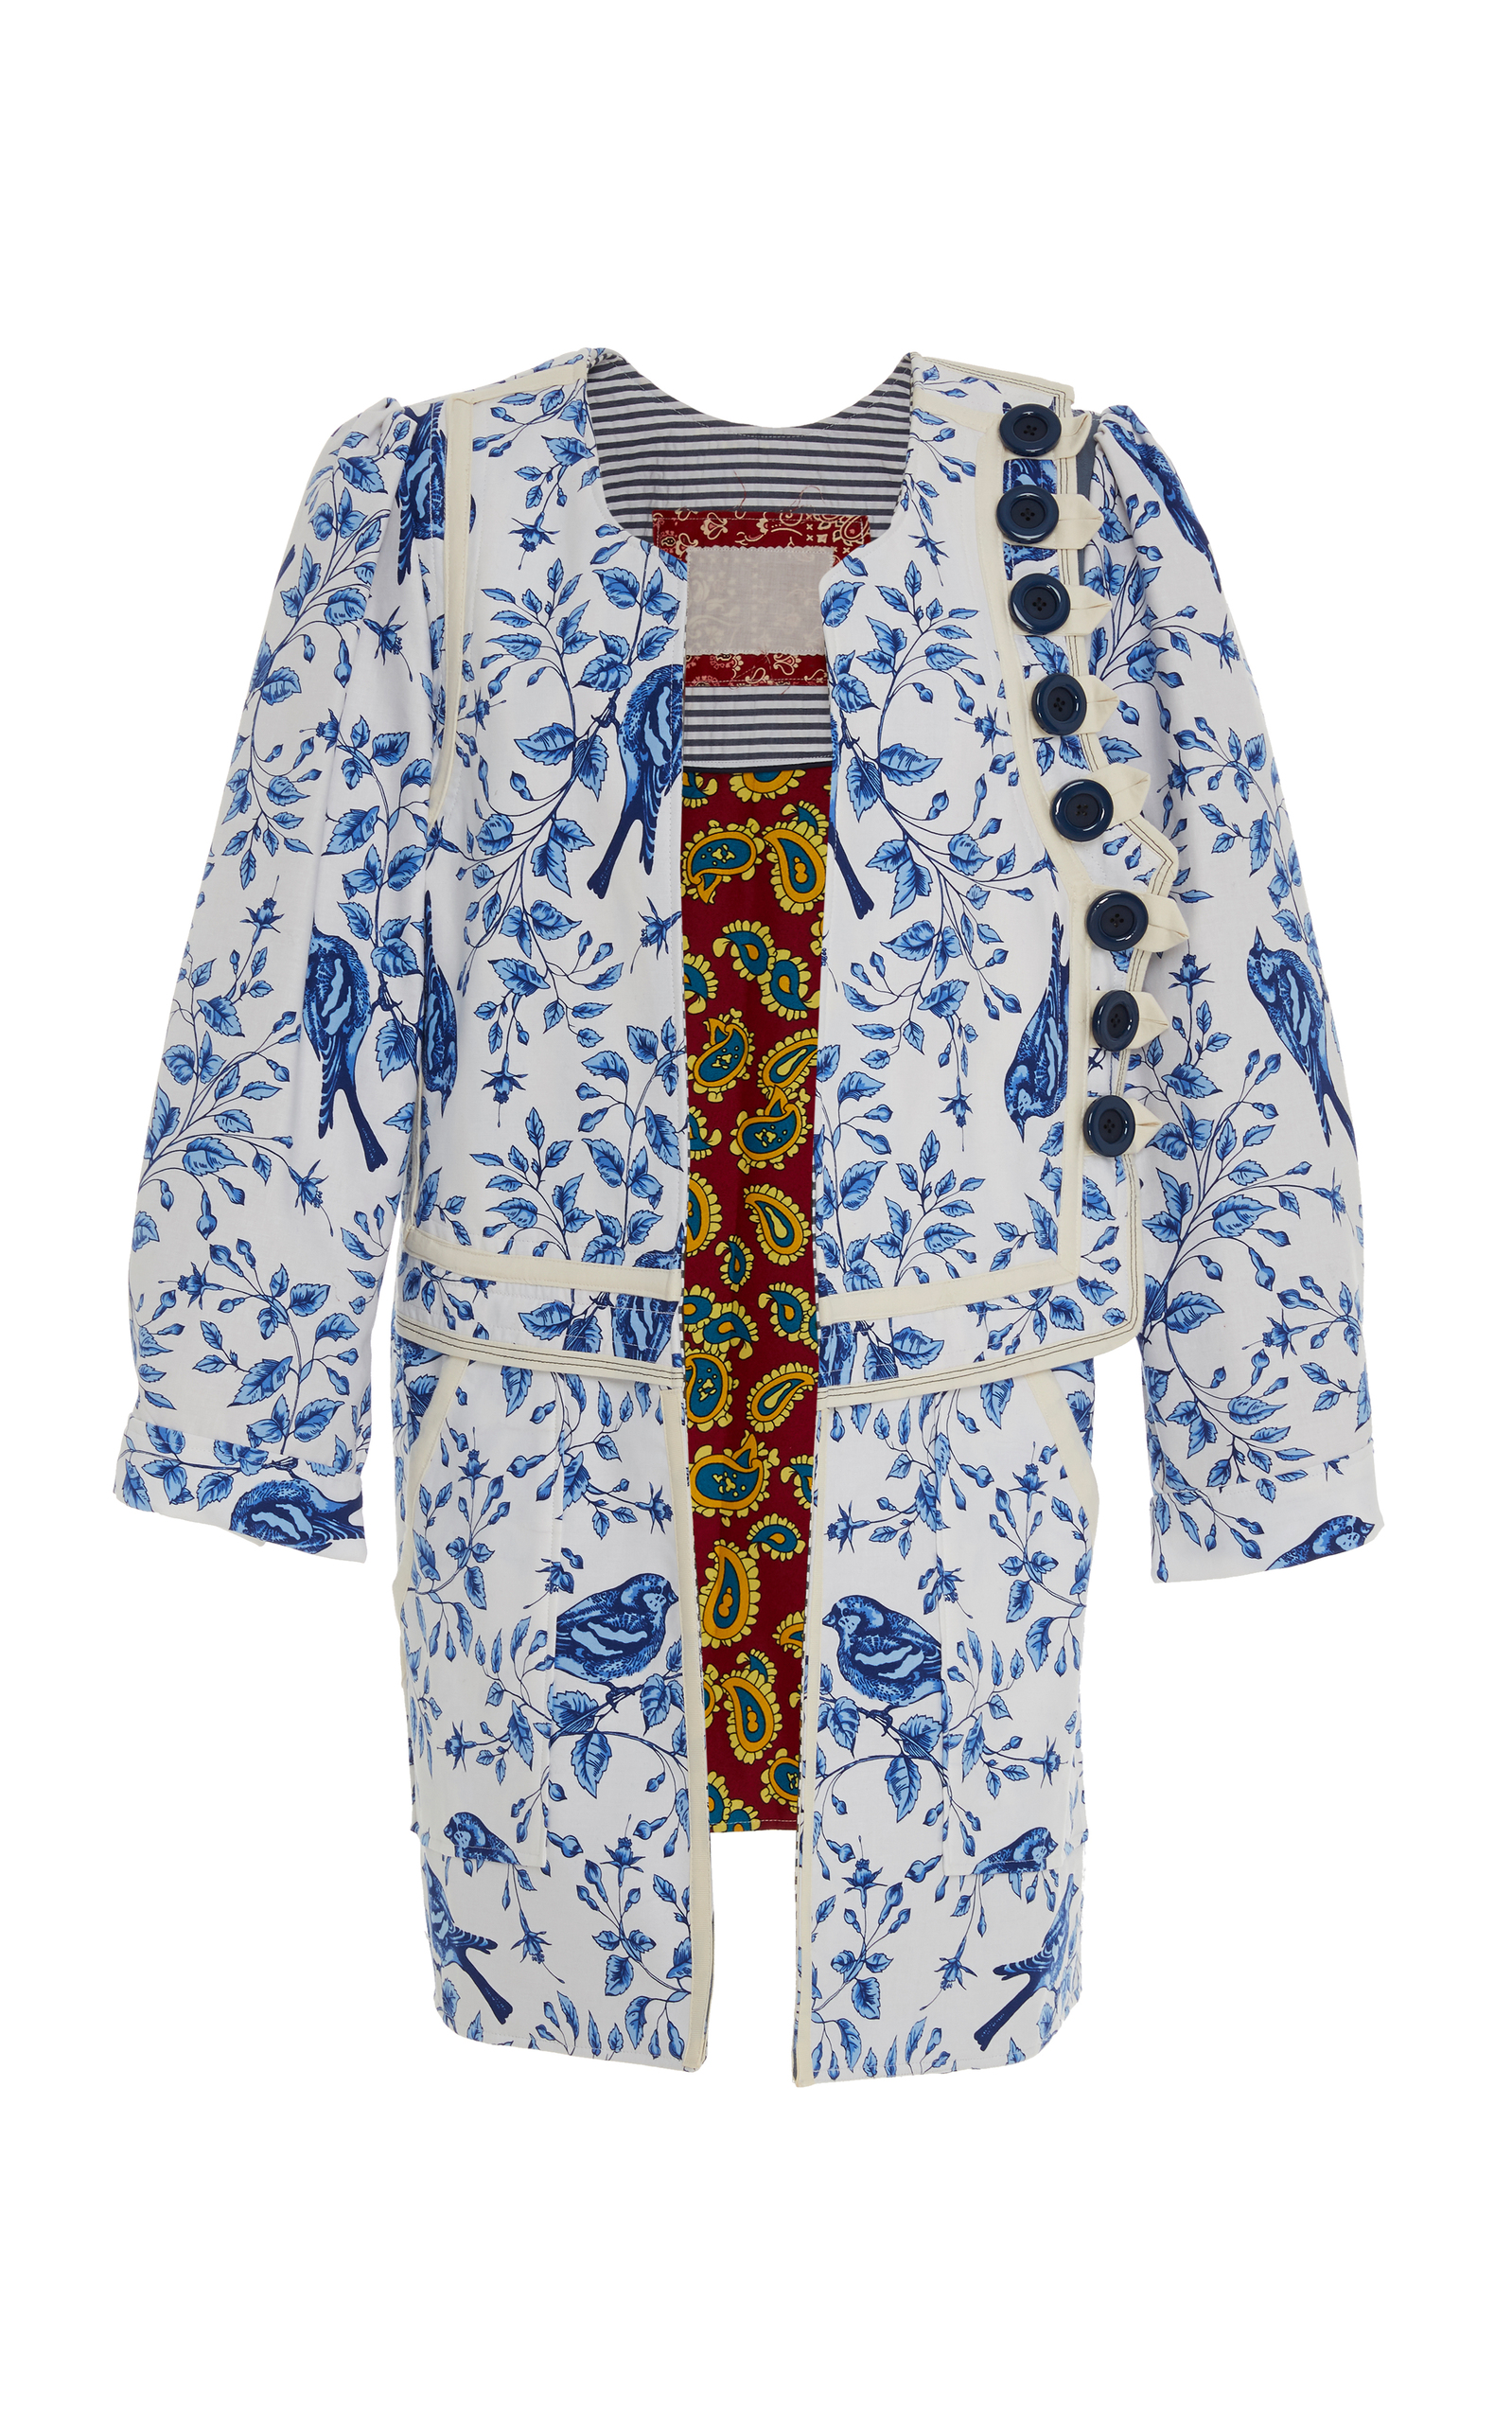 ALIX OF BOHEMIA Limited Edition Birdsong Floral Coat in Print